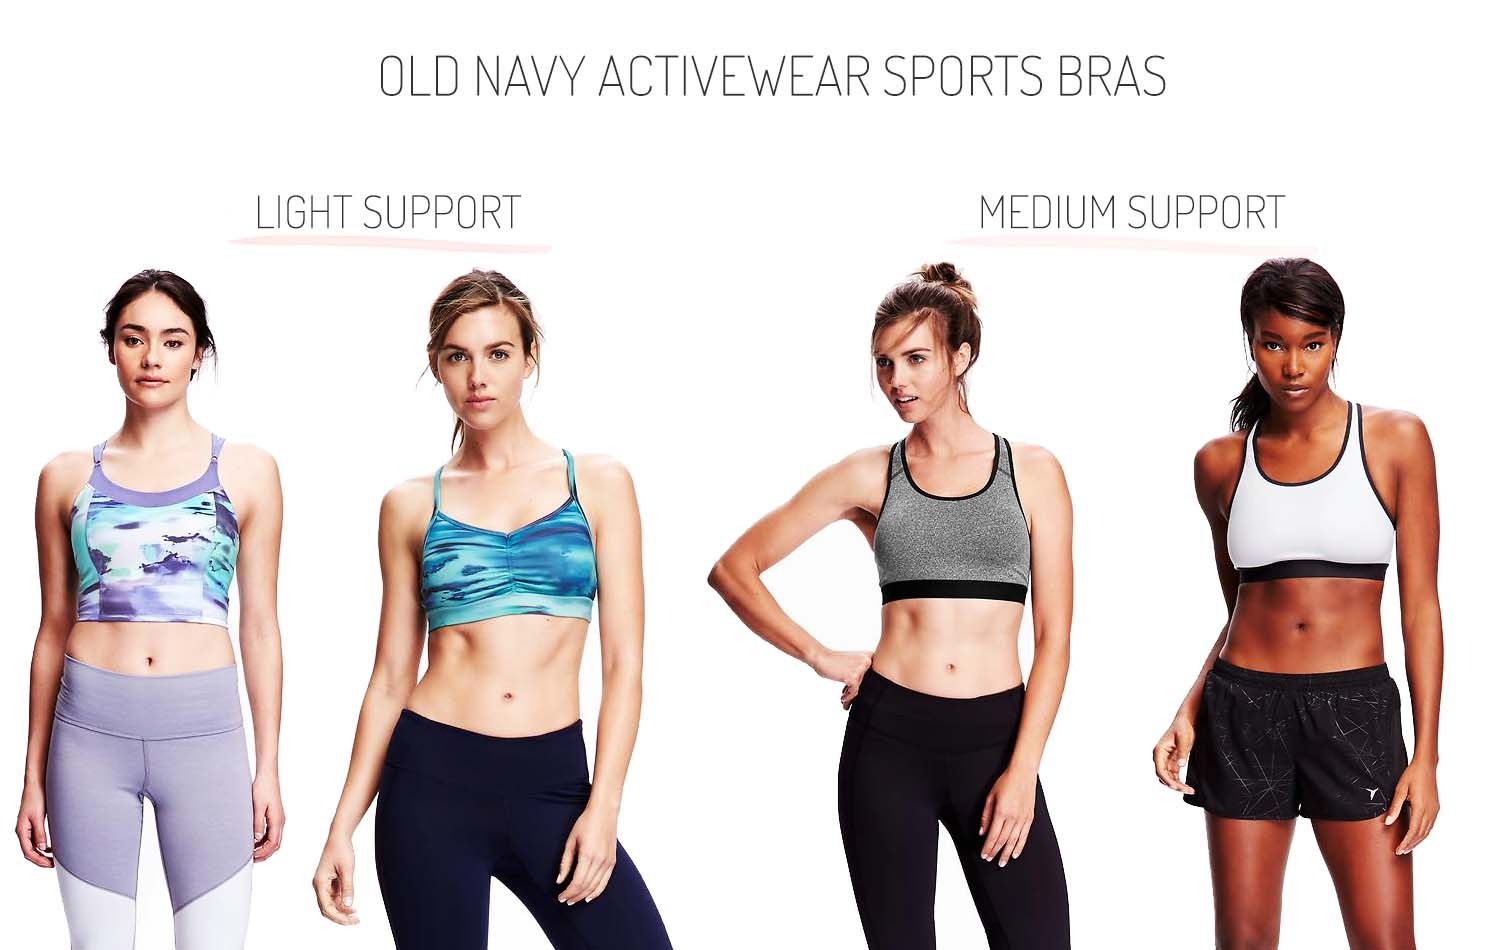 ff318f68d518f Old Navy Activewear Light Support Medium Support Sports Bras